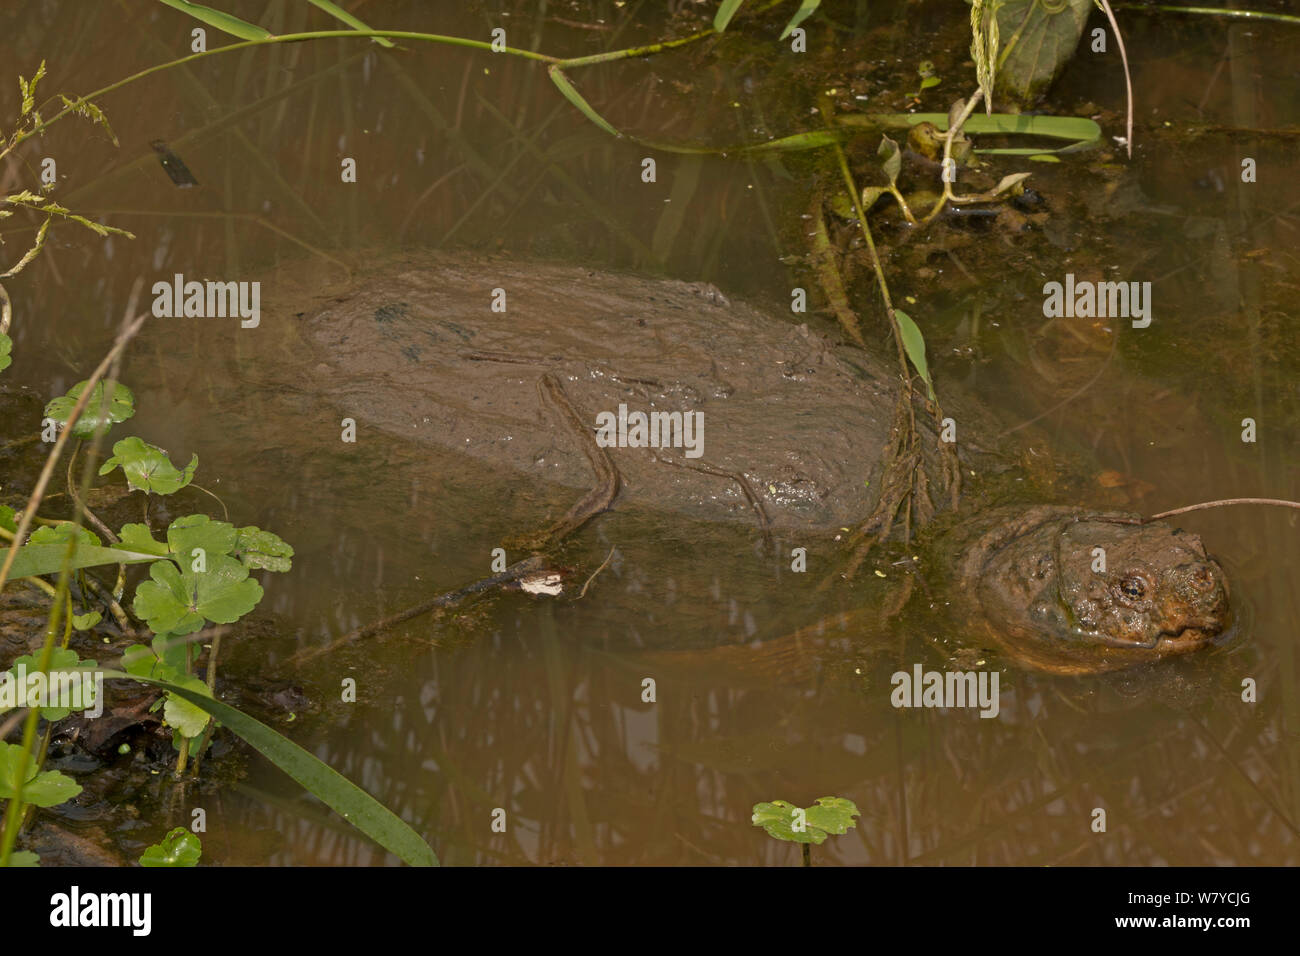 Snapping turtle (Chelydra serpentina) at surface to breath, covered in algae, Virginia, USA. September. Stock Photo